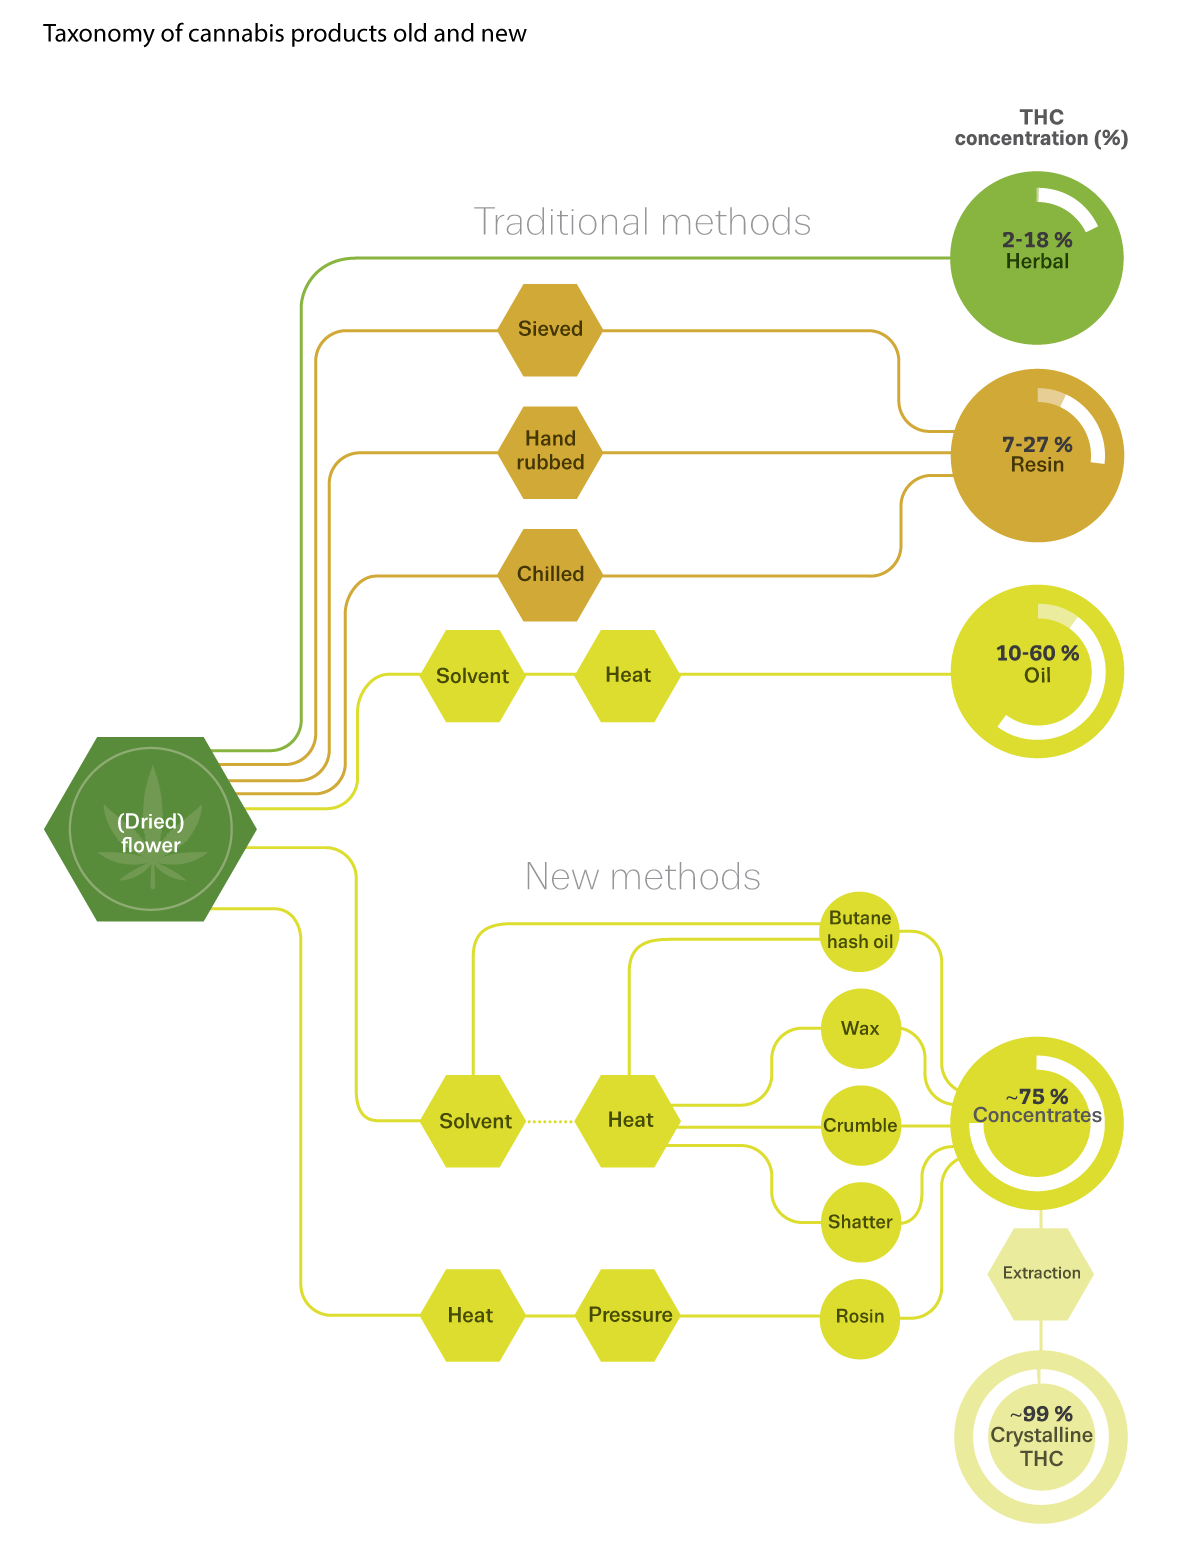 graphic showing different types of cannabis products and their THC concentration levels